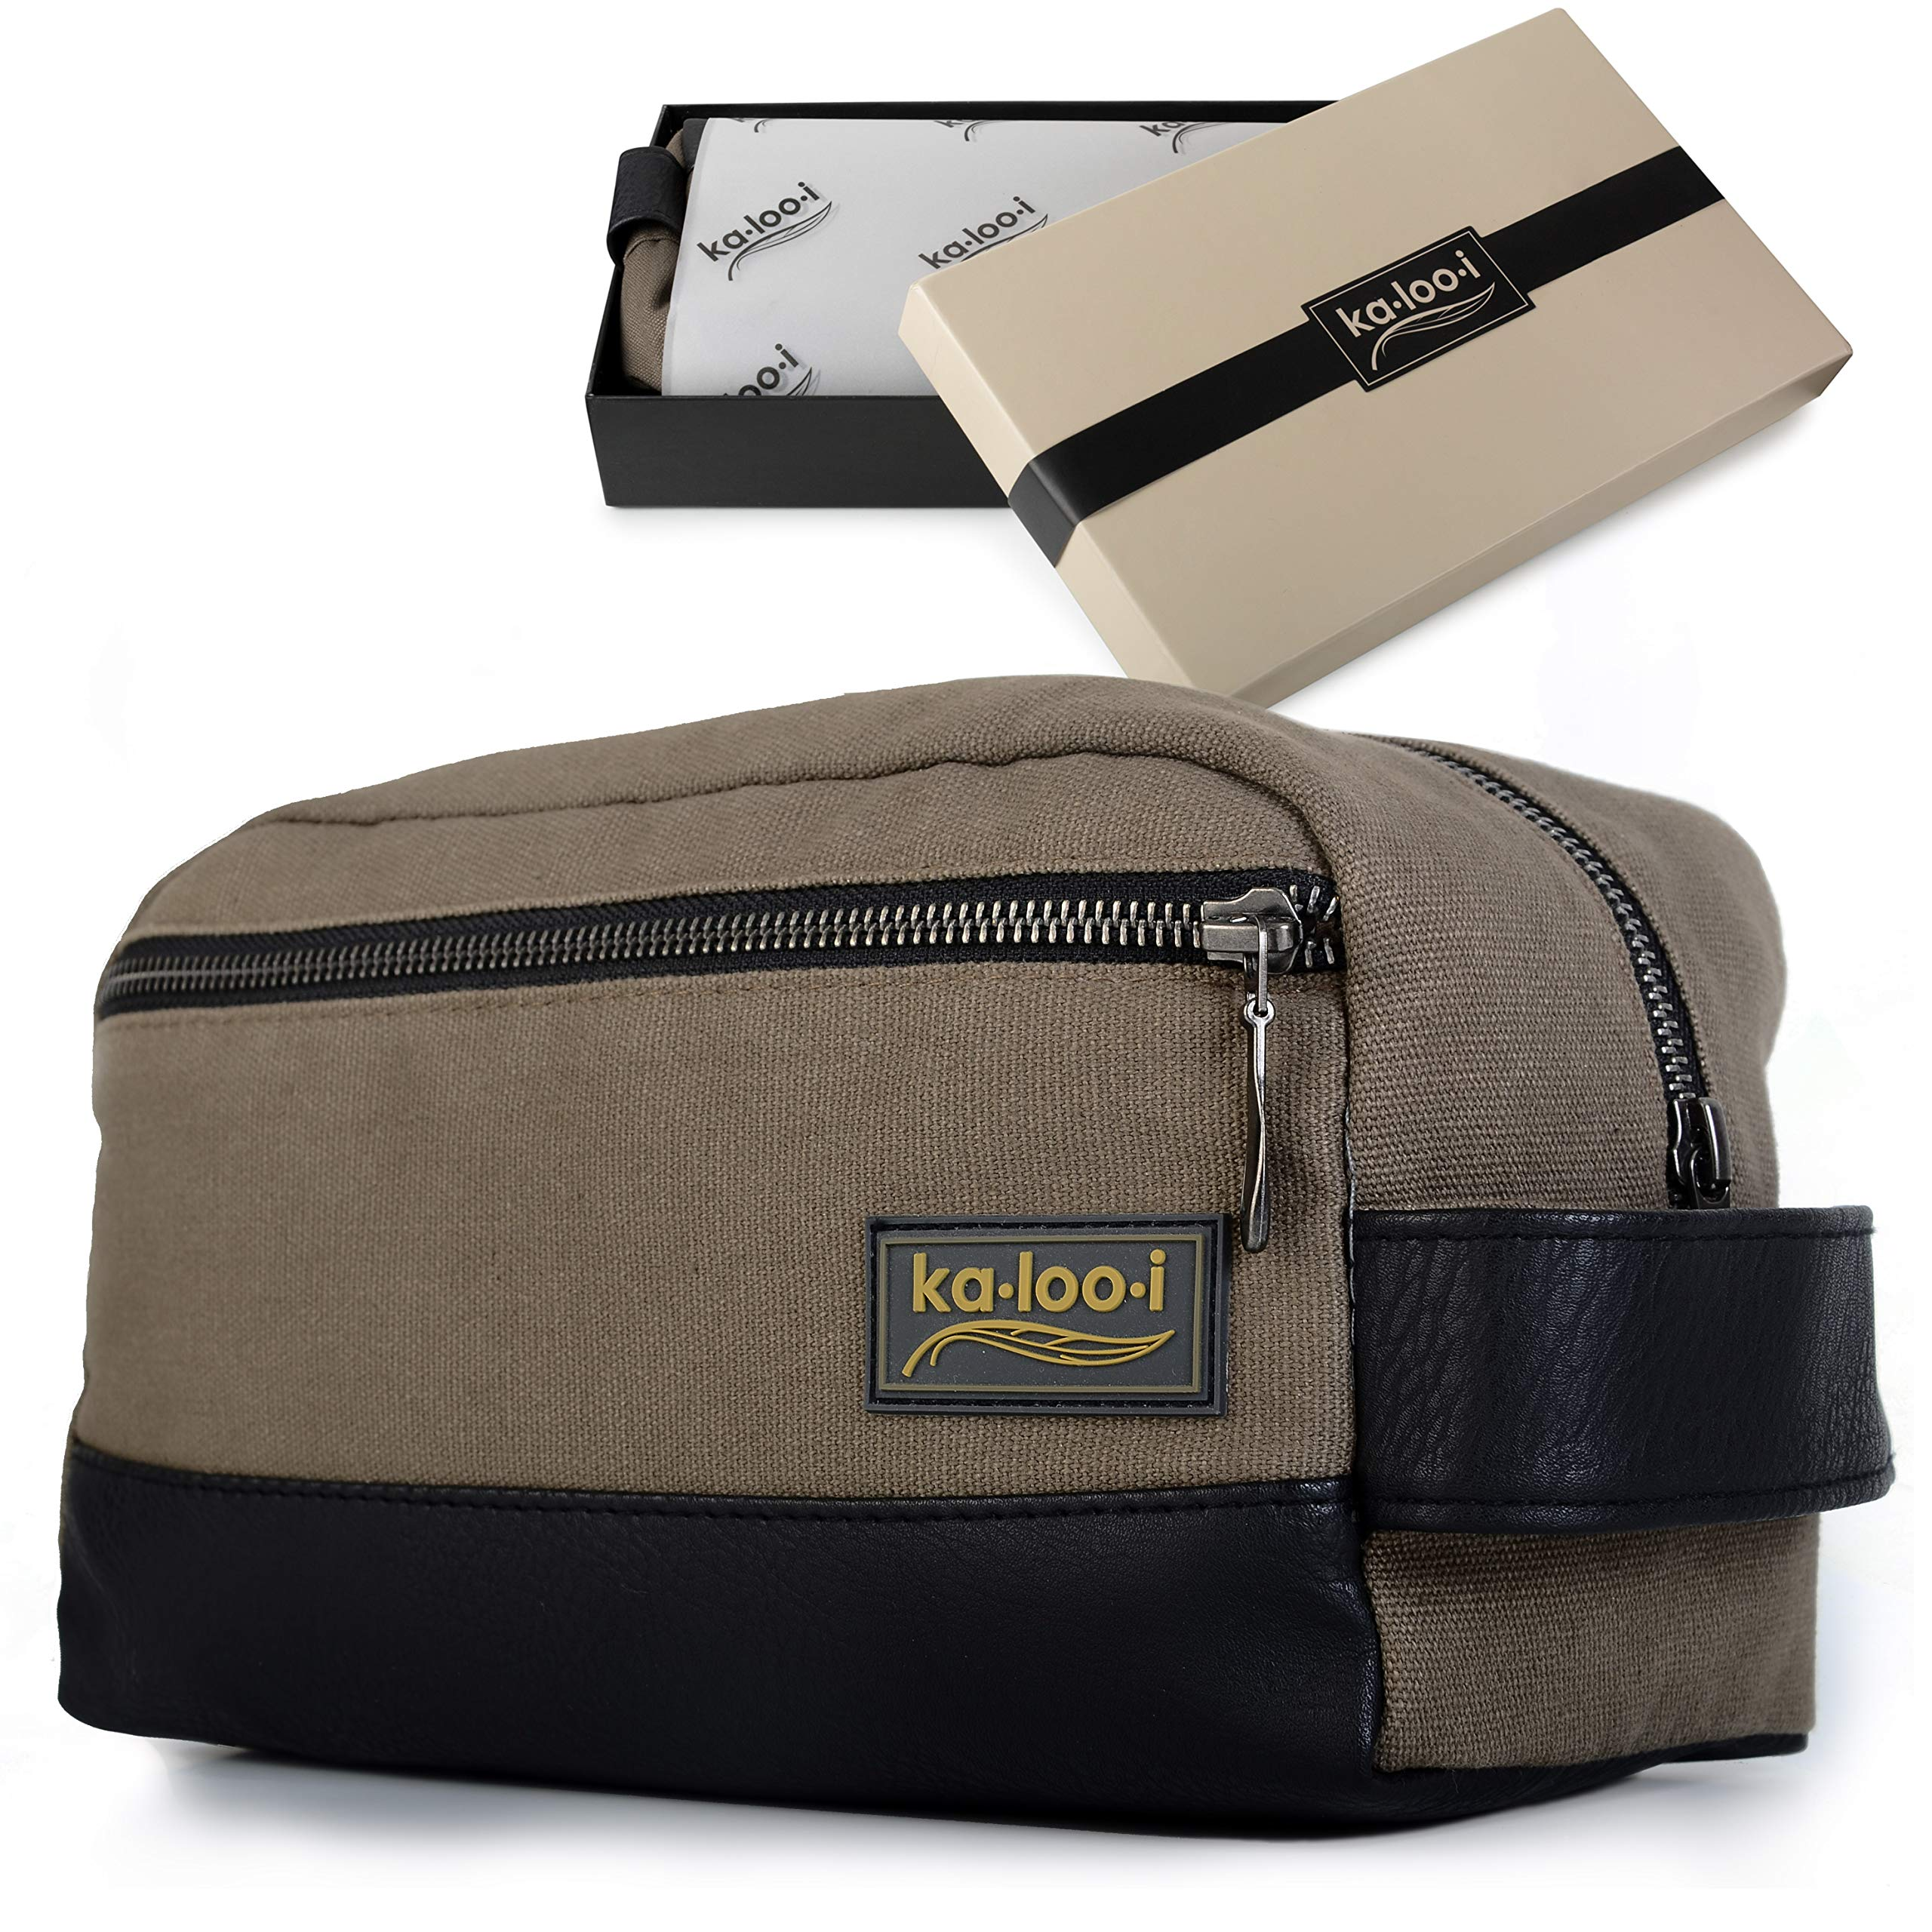 f7b28b72a4 Amazon.com   Toiletry Bag for Men - Canvas Dopp Kit for Travel